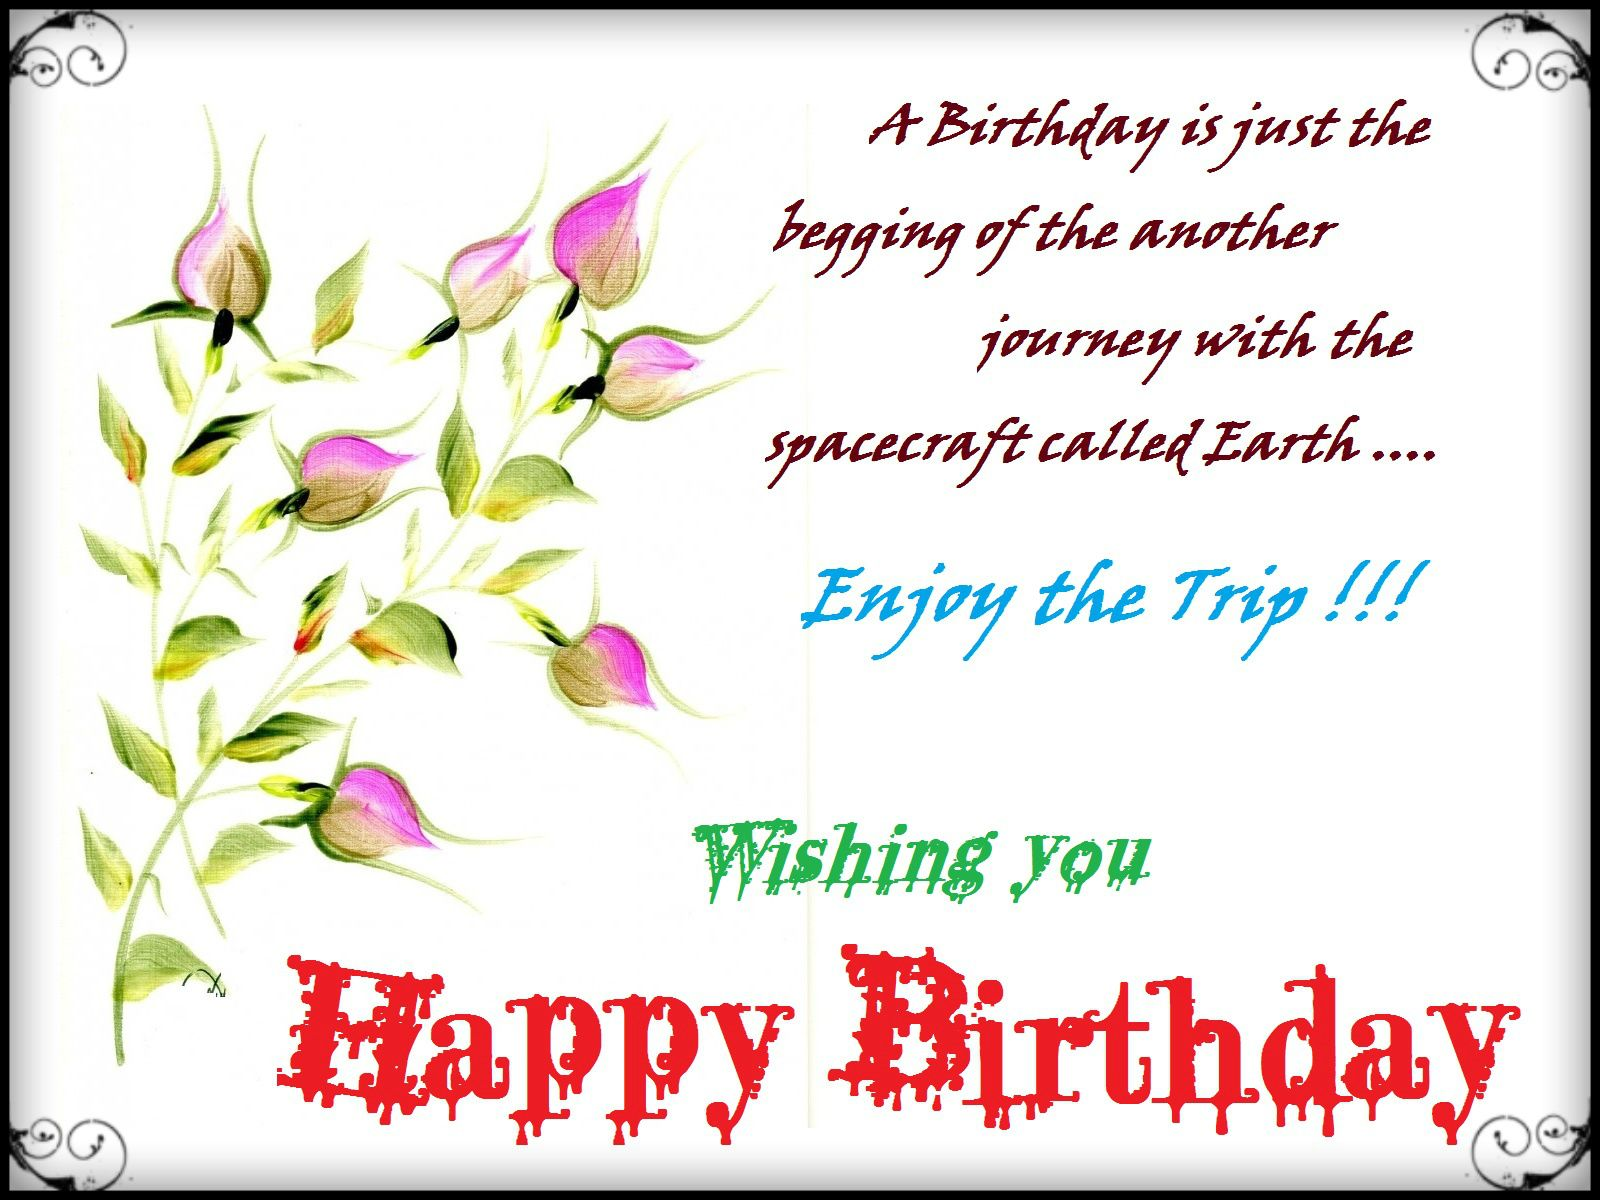 Pin by Vikas Pandey on Happy Birthday Cards Pinterest